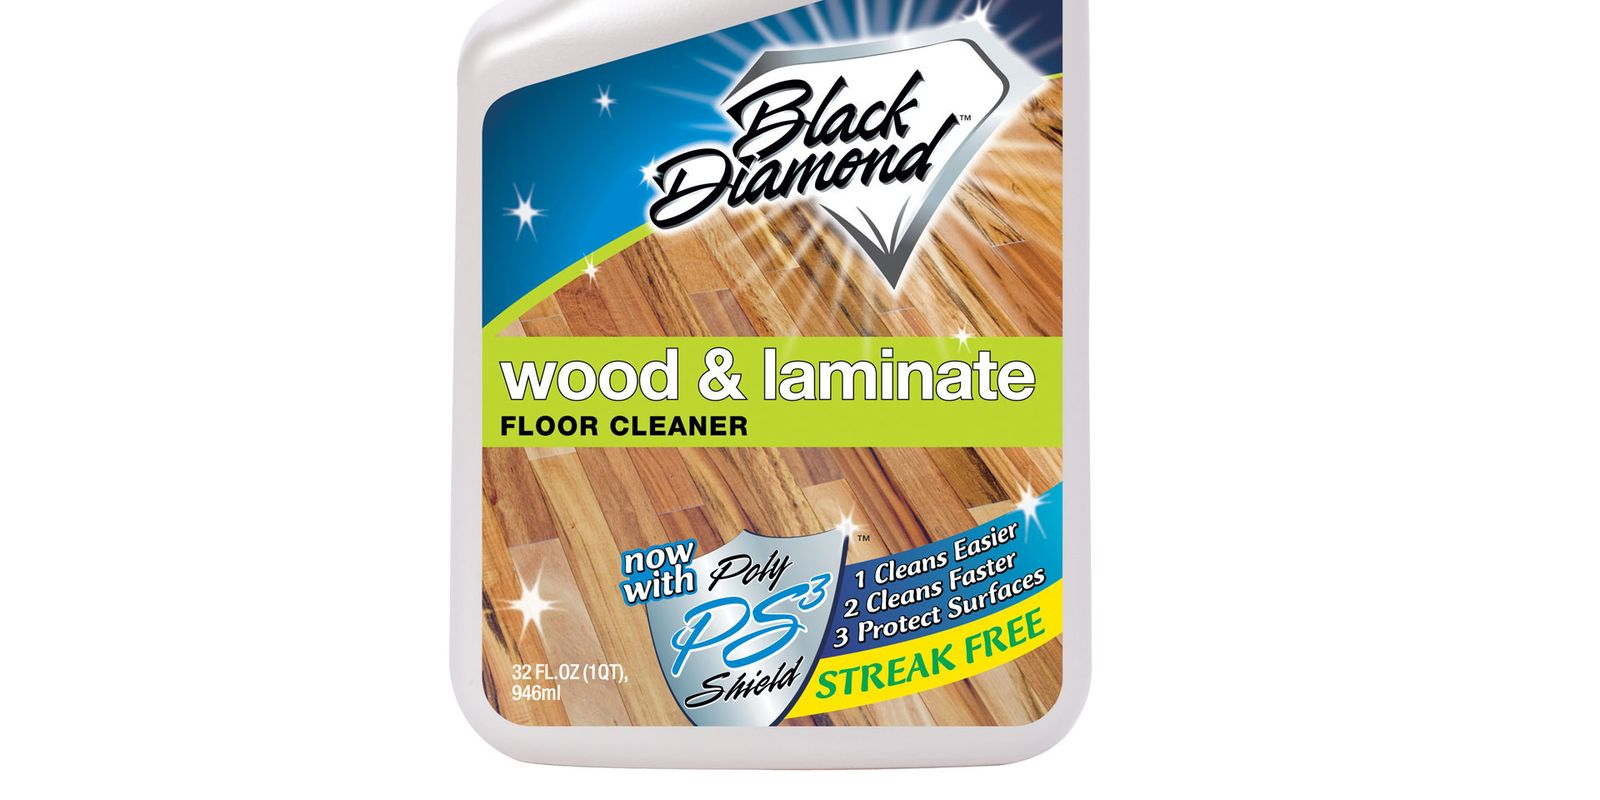 Black diamond wood and laminate floor cleaner review for Floor cleaning